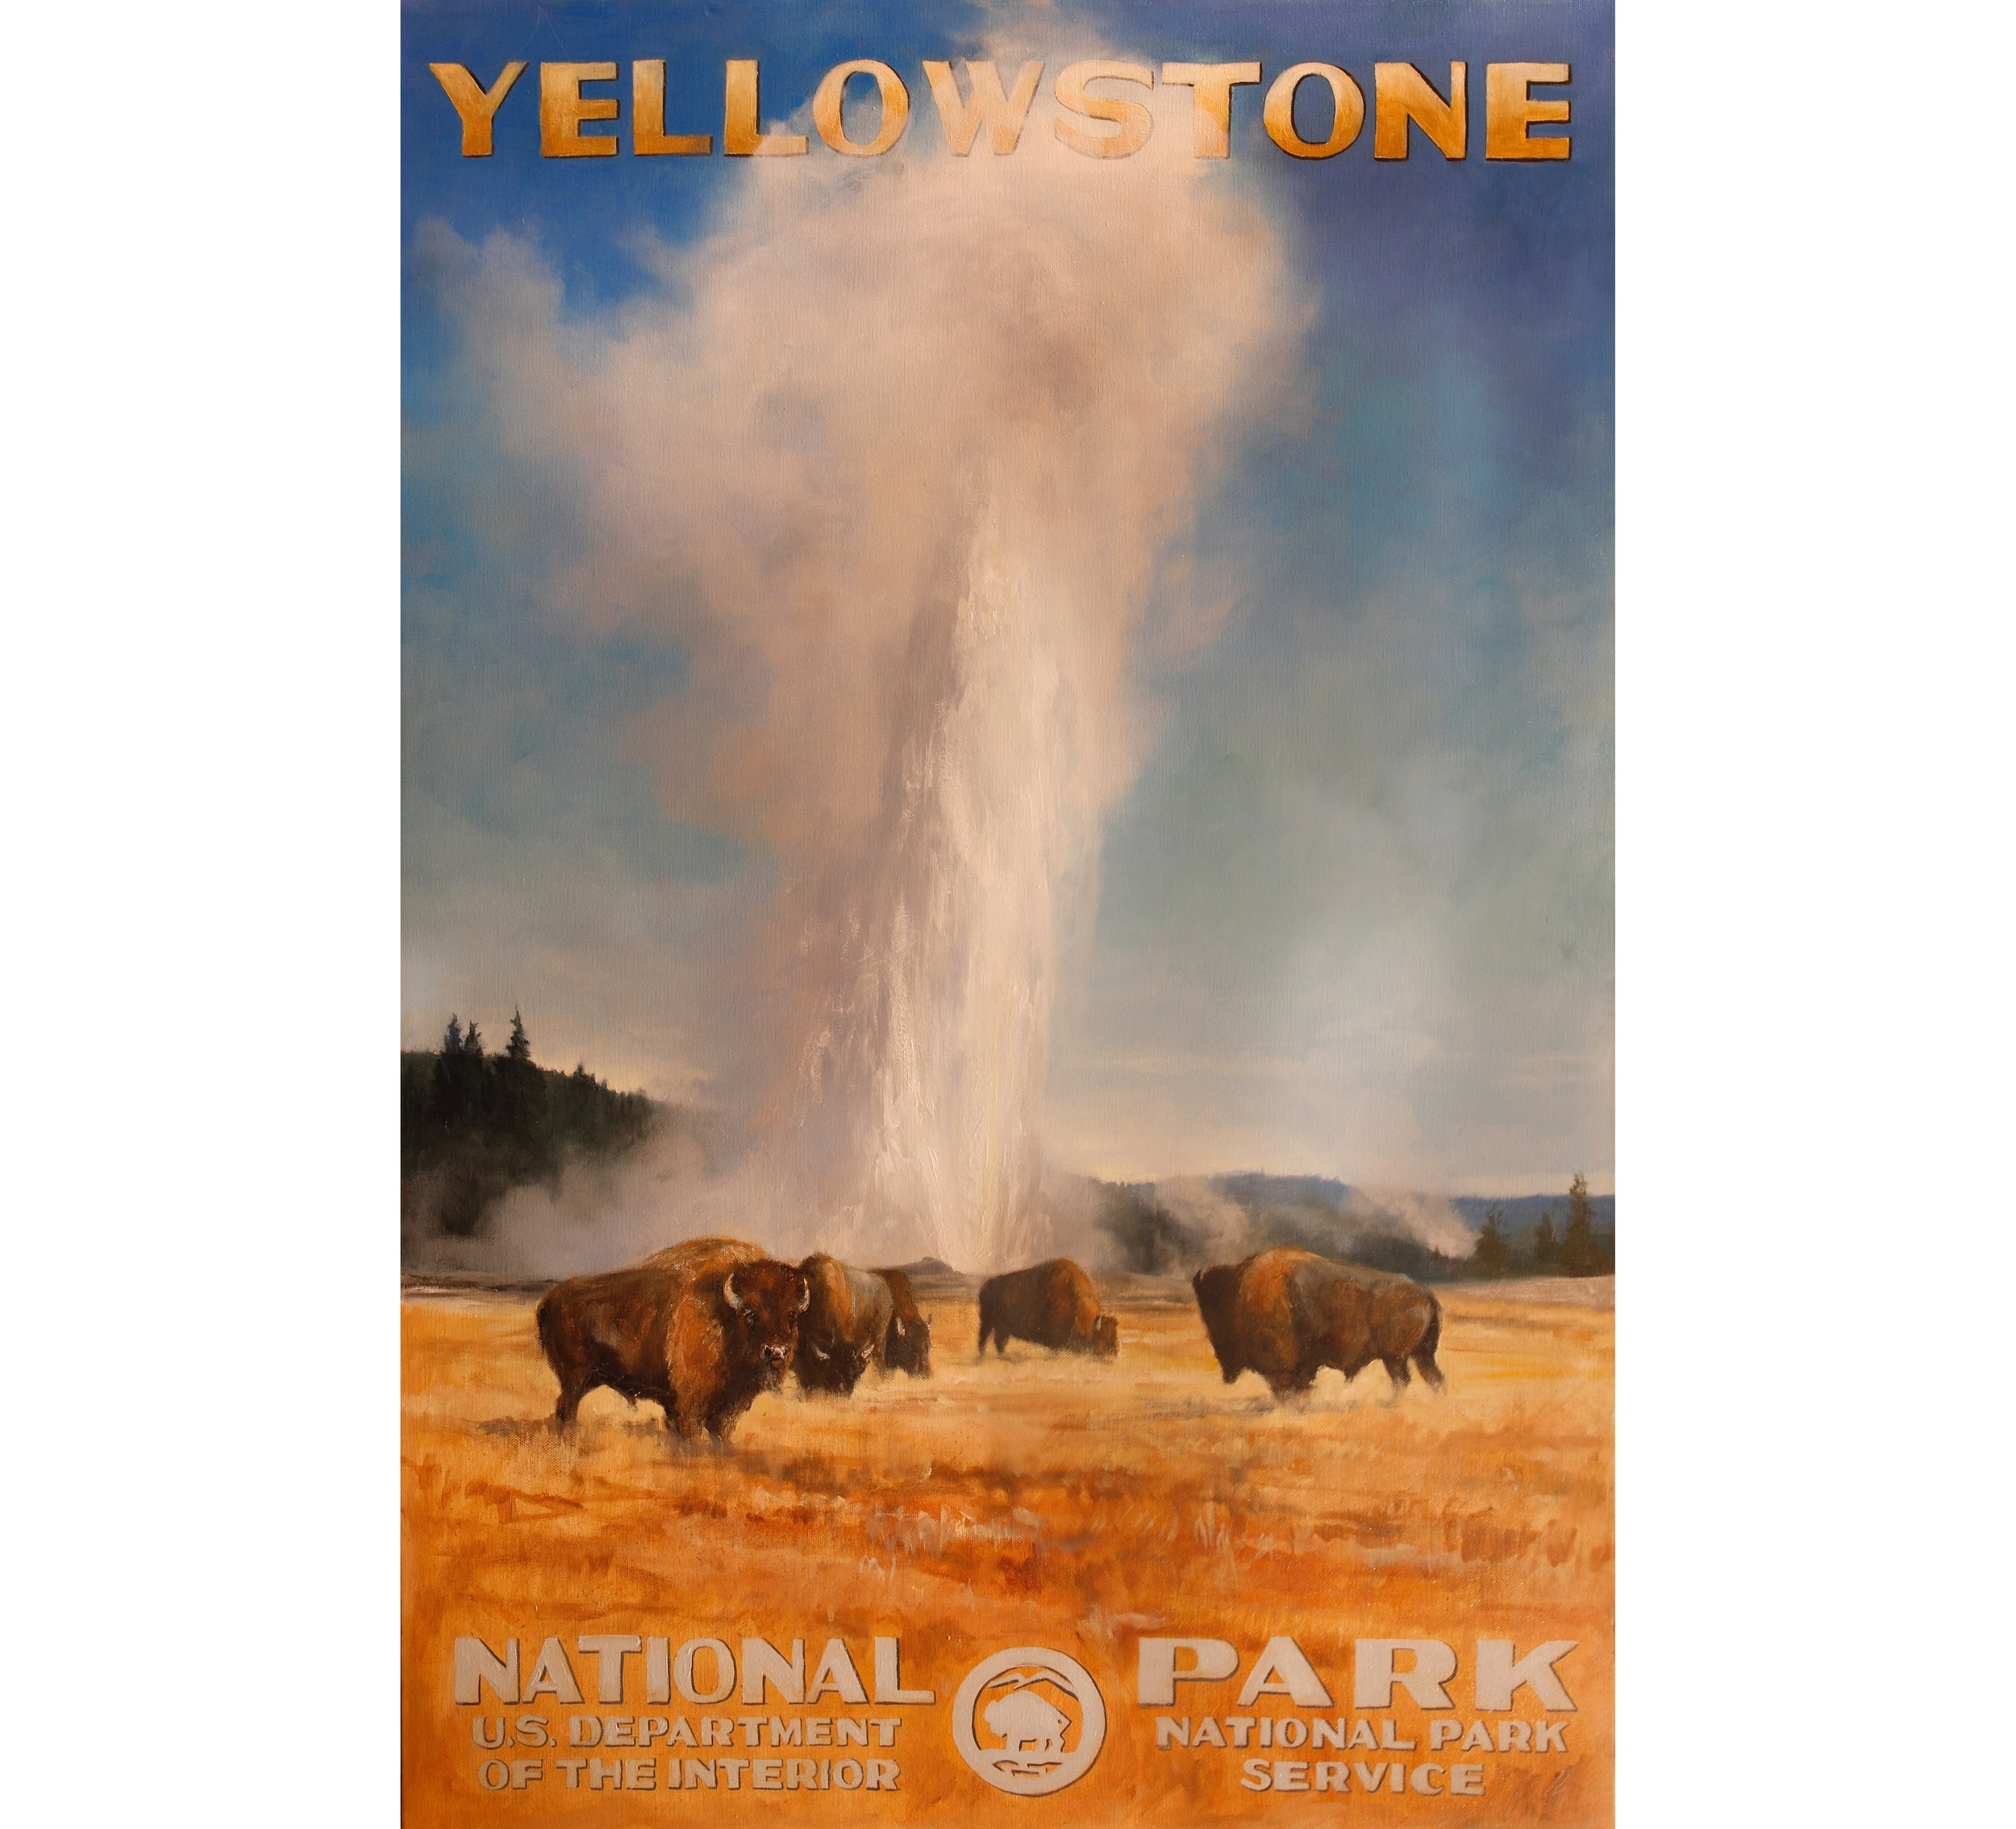 Original from  Beauty of Our National Parks  now available at the gallery!